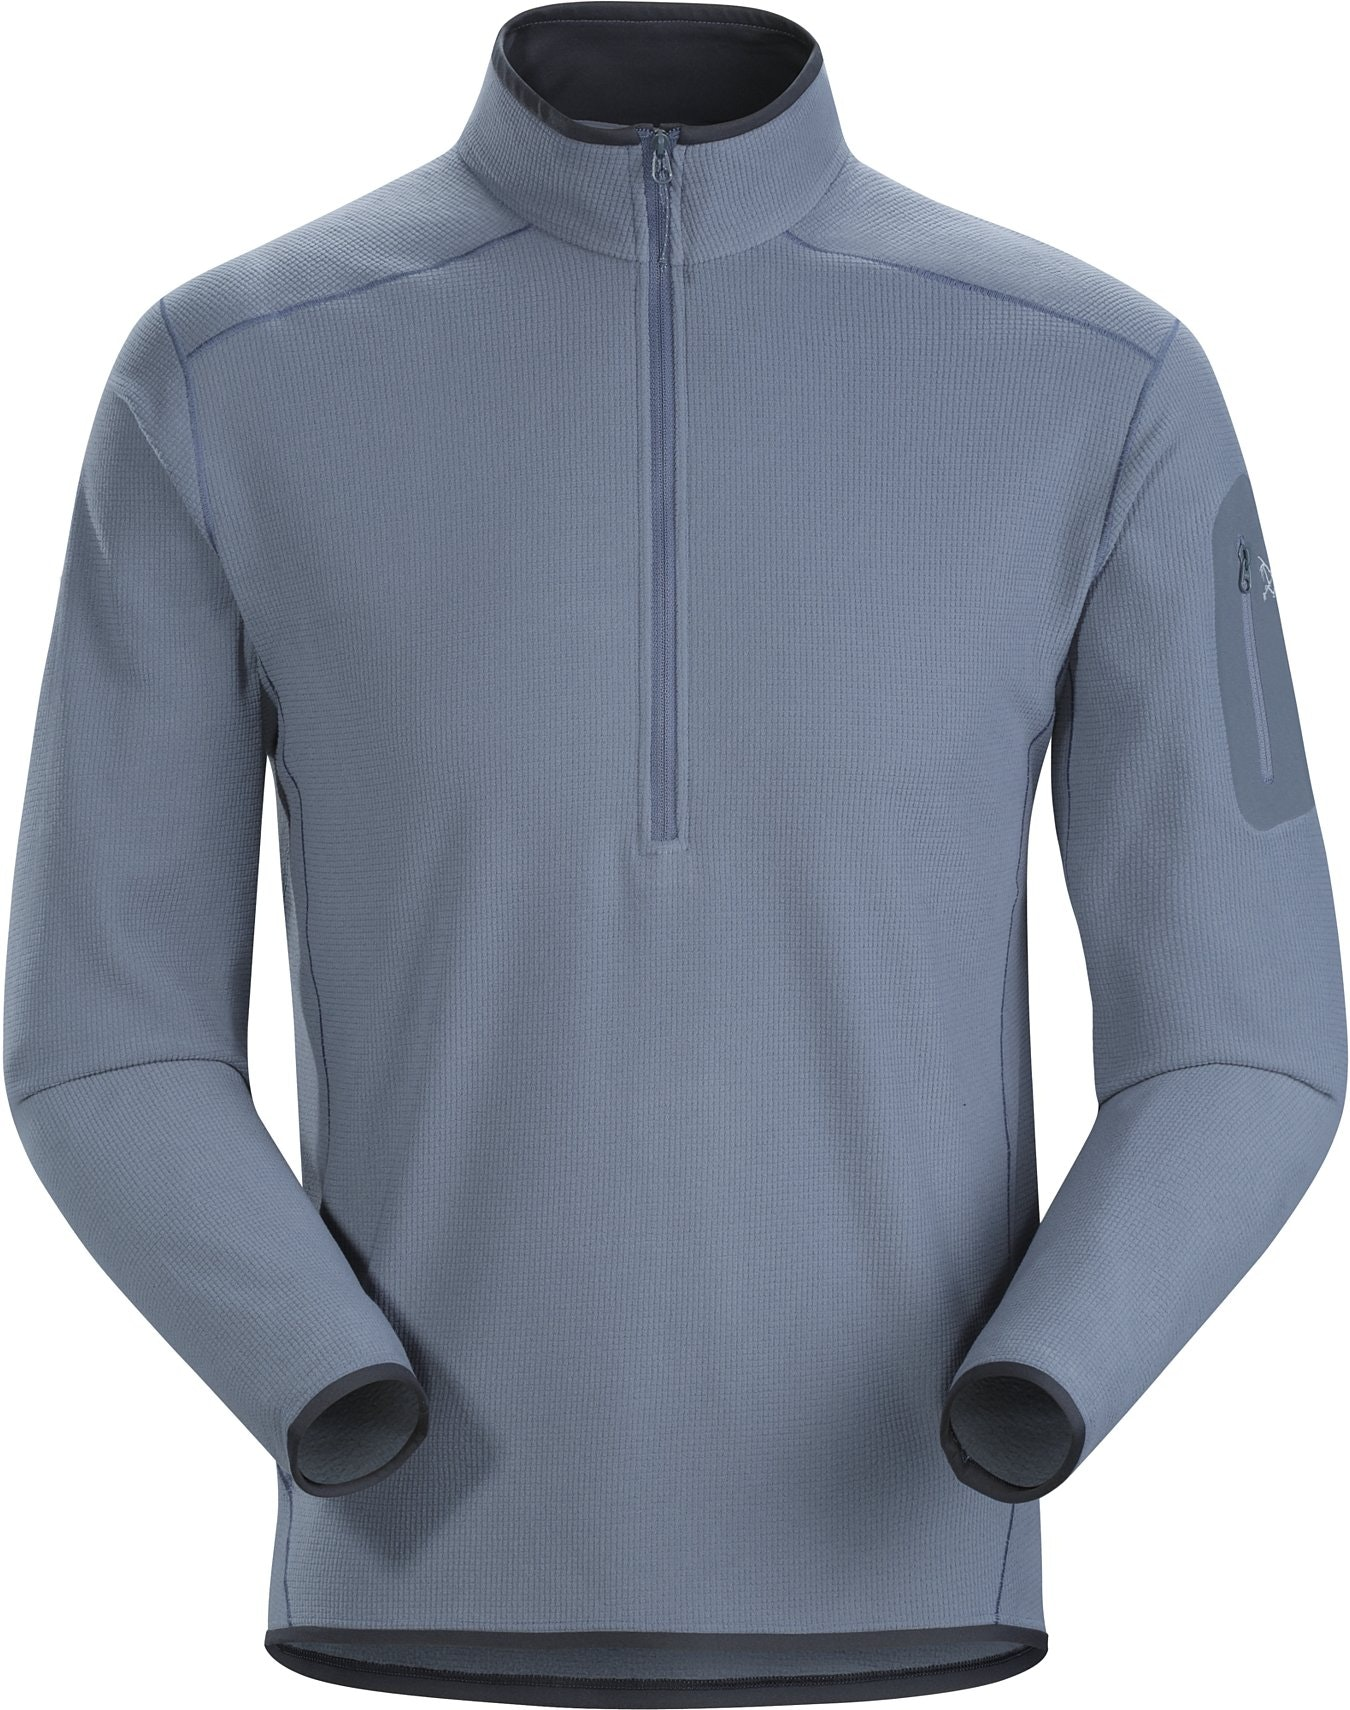 Delta LT Zip Neck / Mens | Arc'teryx